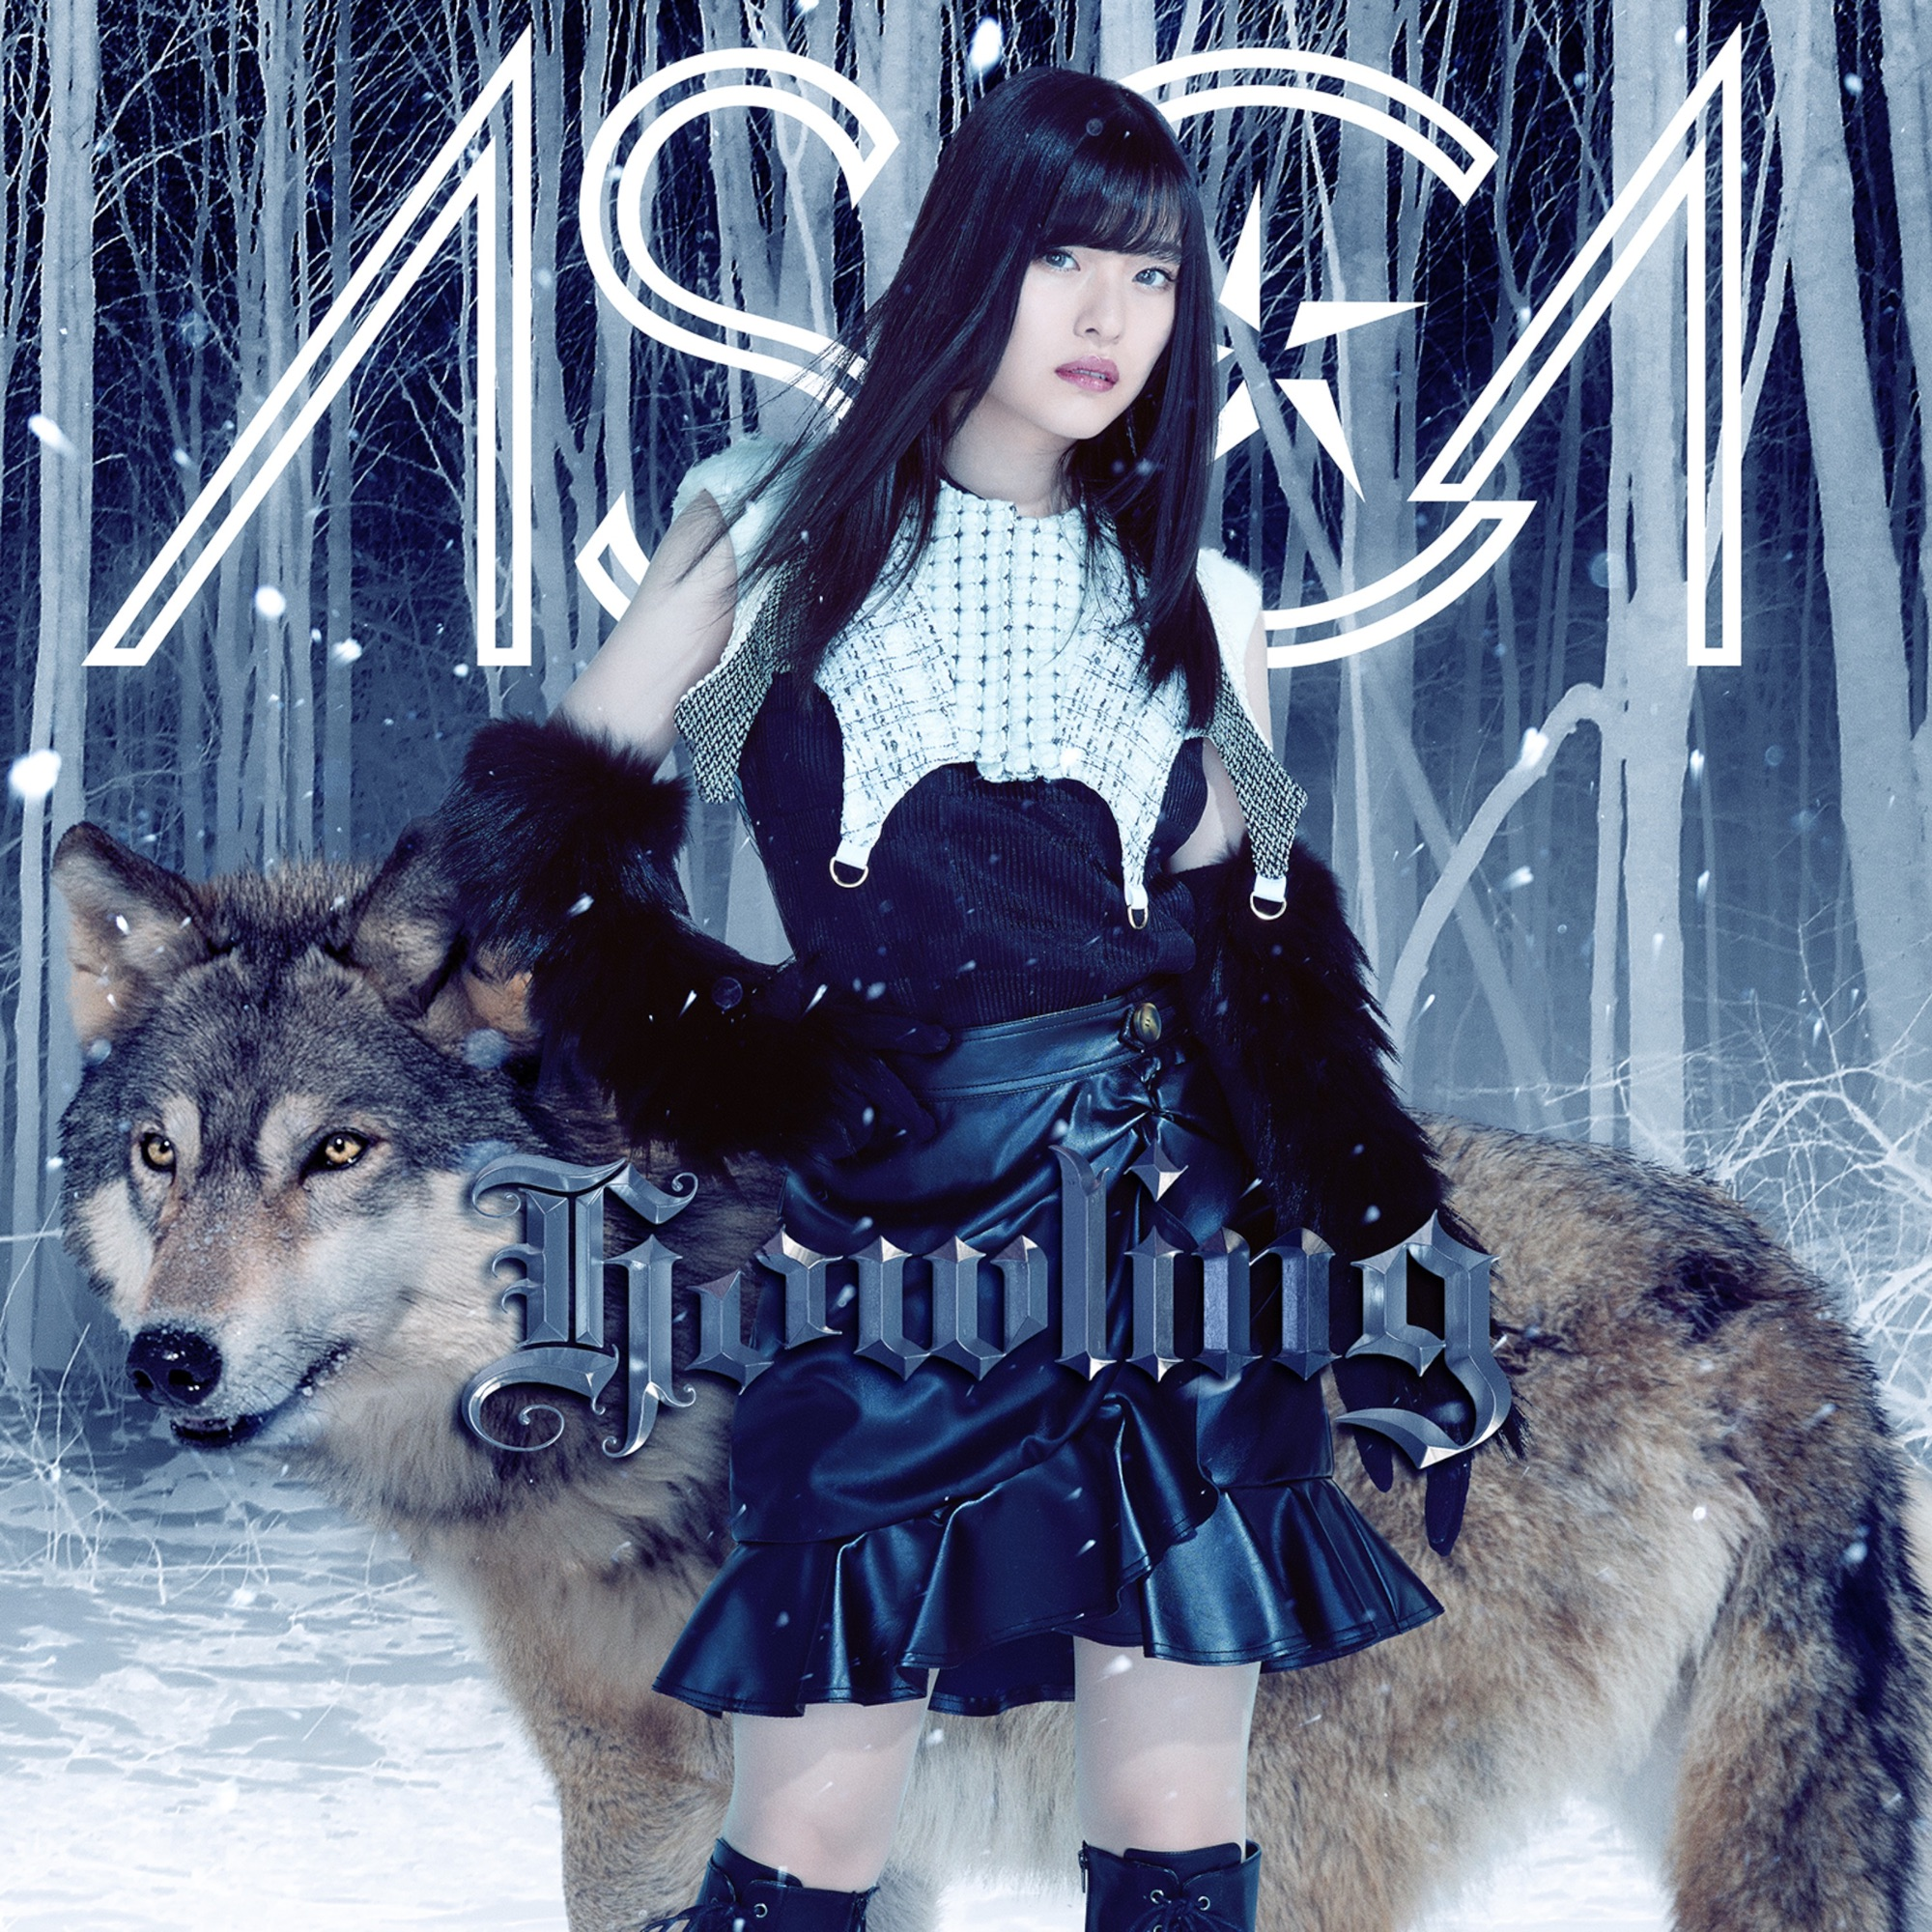 ASCA – Howling